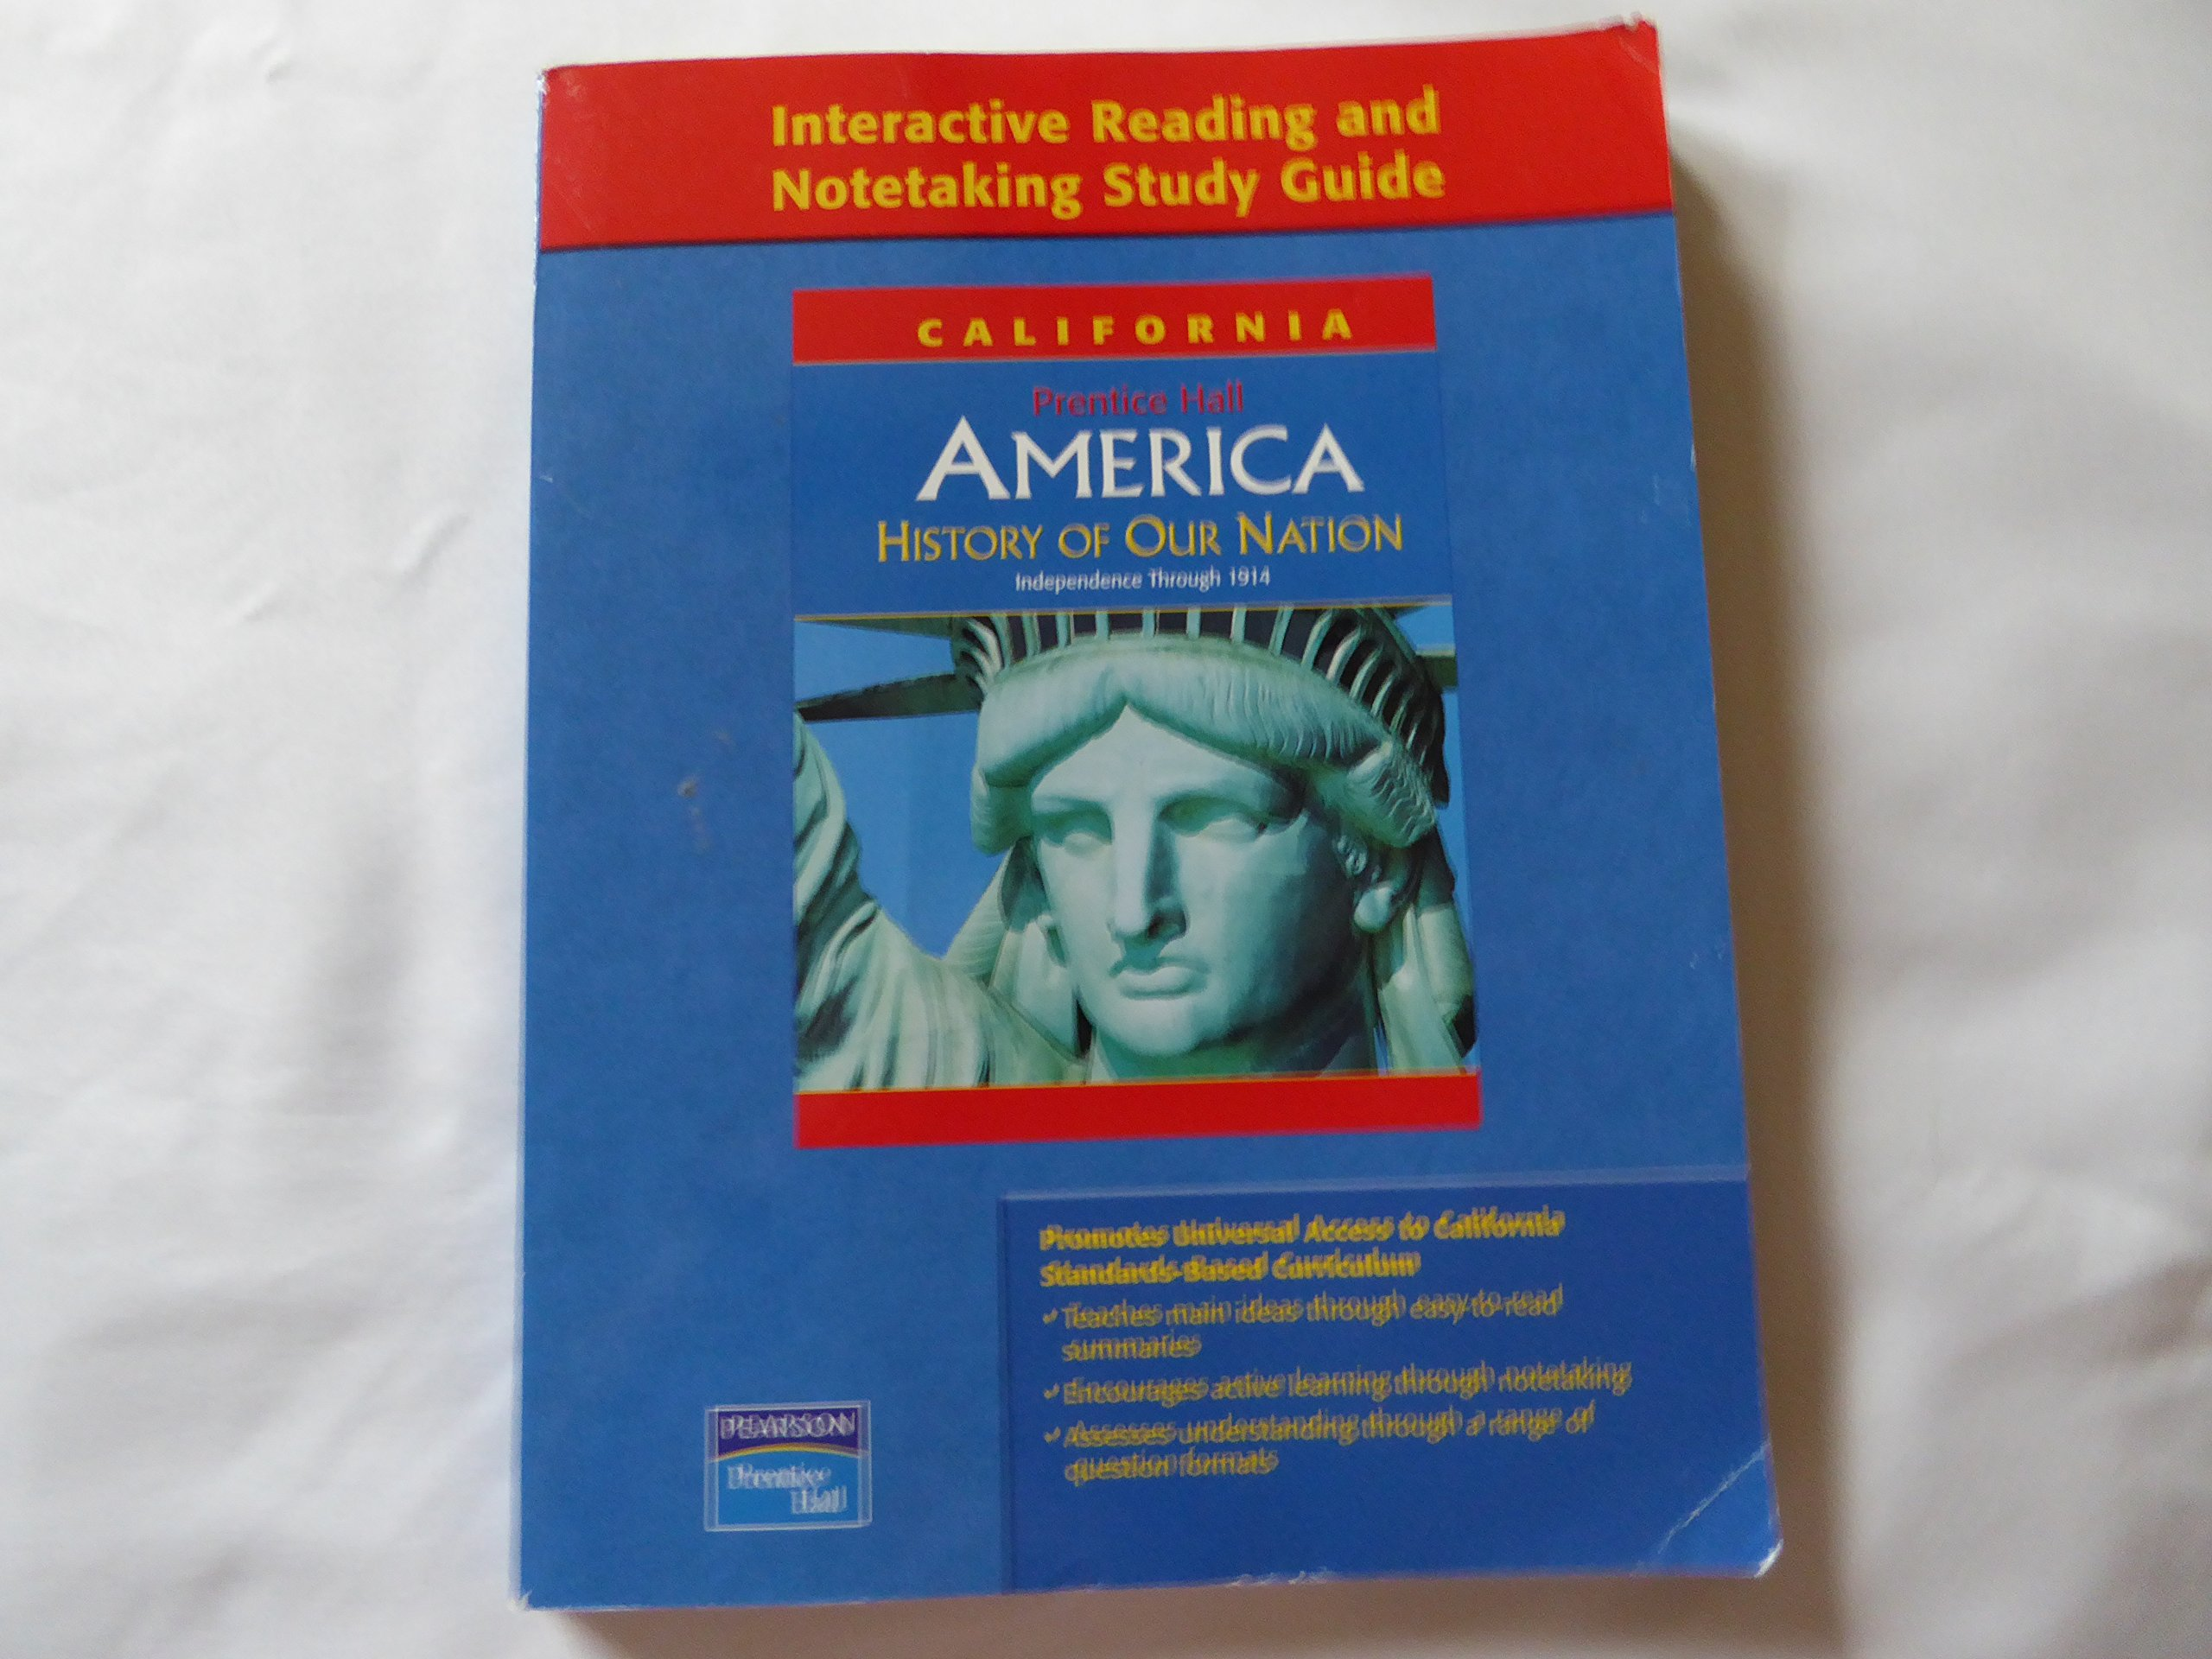 Prentice Hall America History of Our Nation (Interactive Reading and  Notetaking Study Guide) Califor: Pearson Prentice Hall: 9780131199972:  Amazon.com: ...